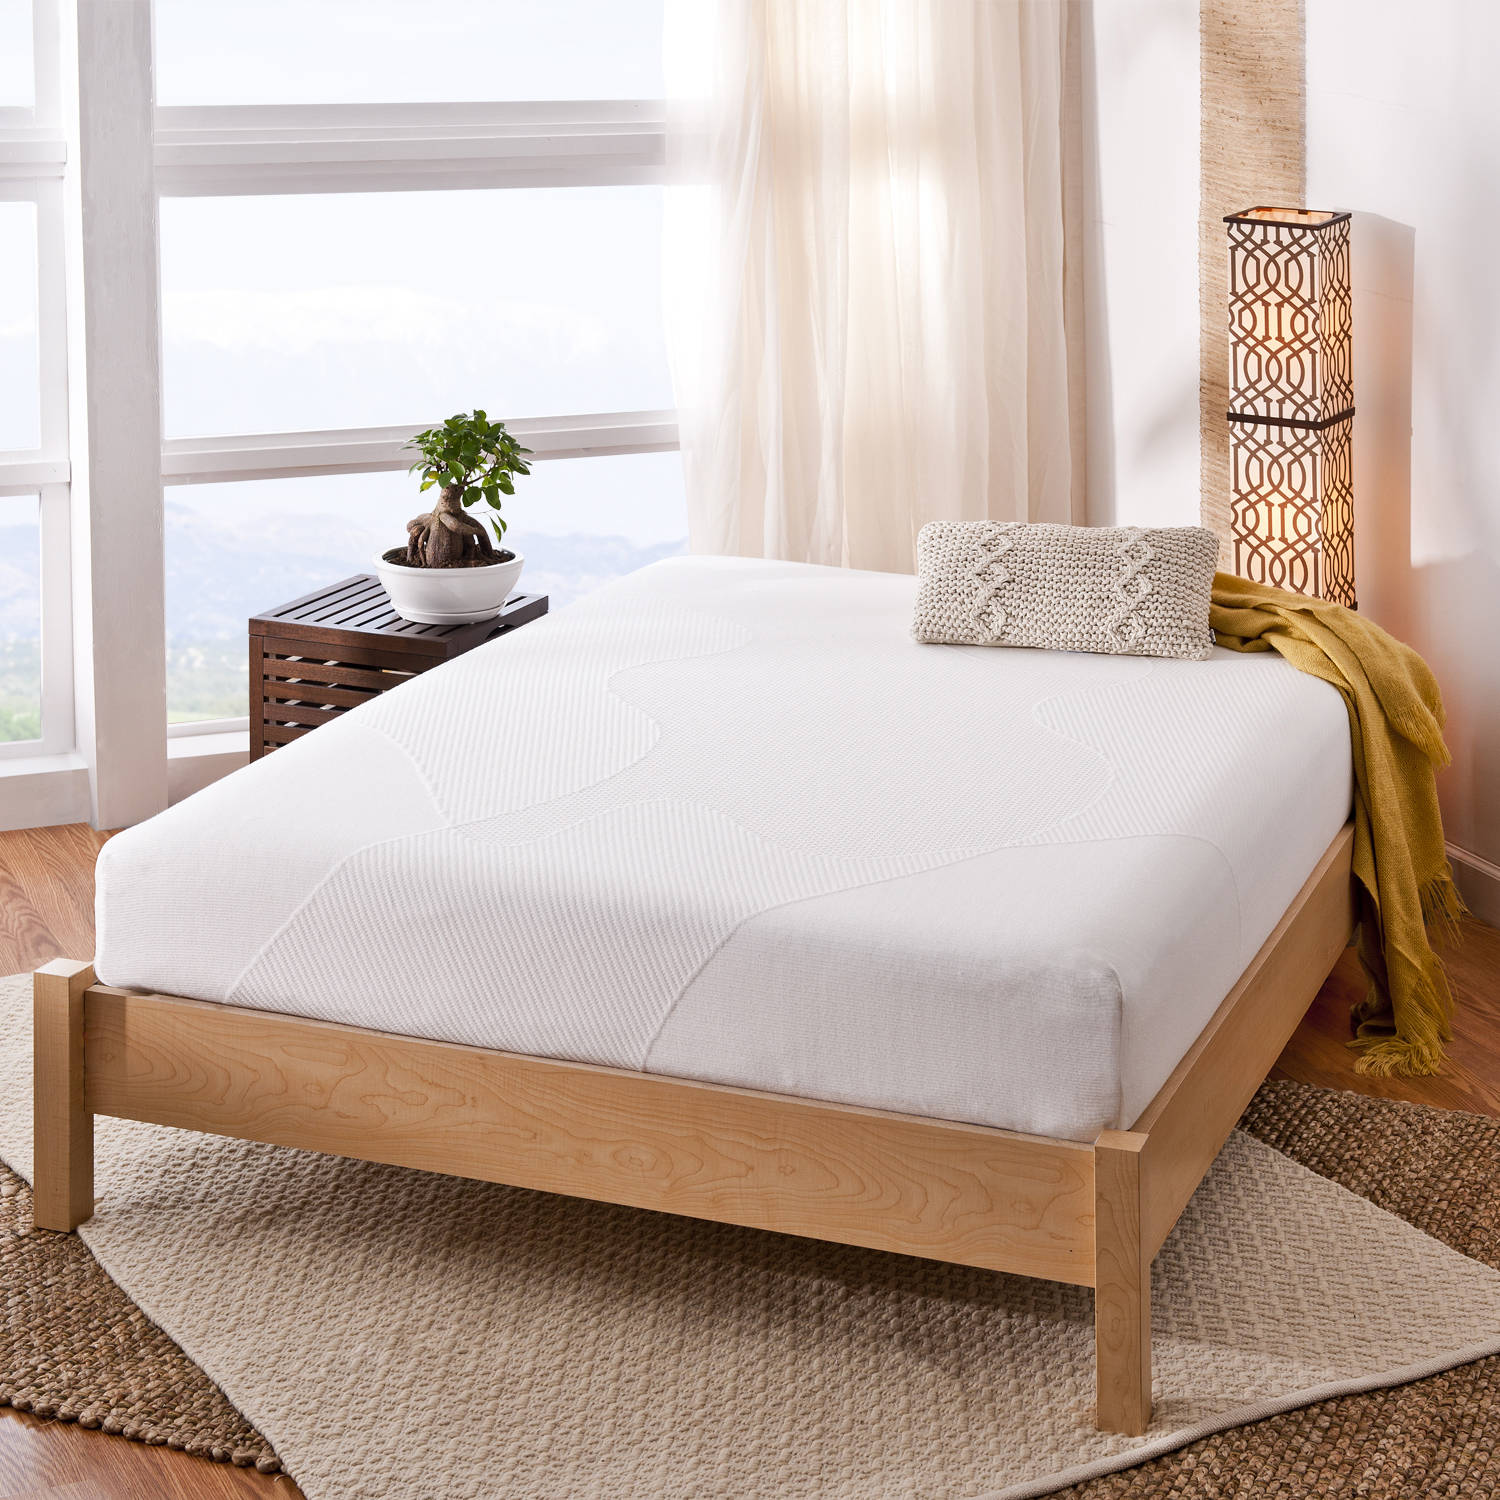 "Spa Sensations 10"" Memory Foam Mattress"